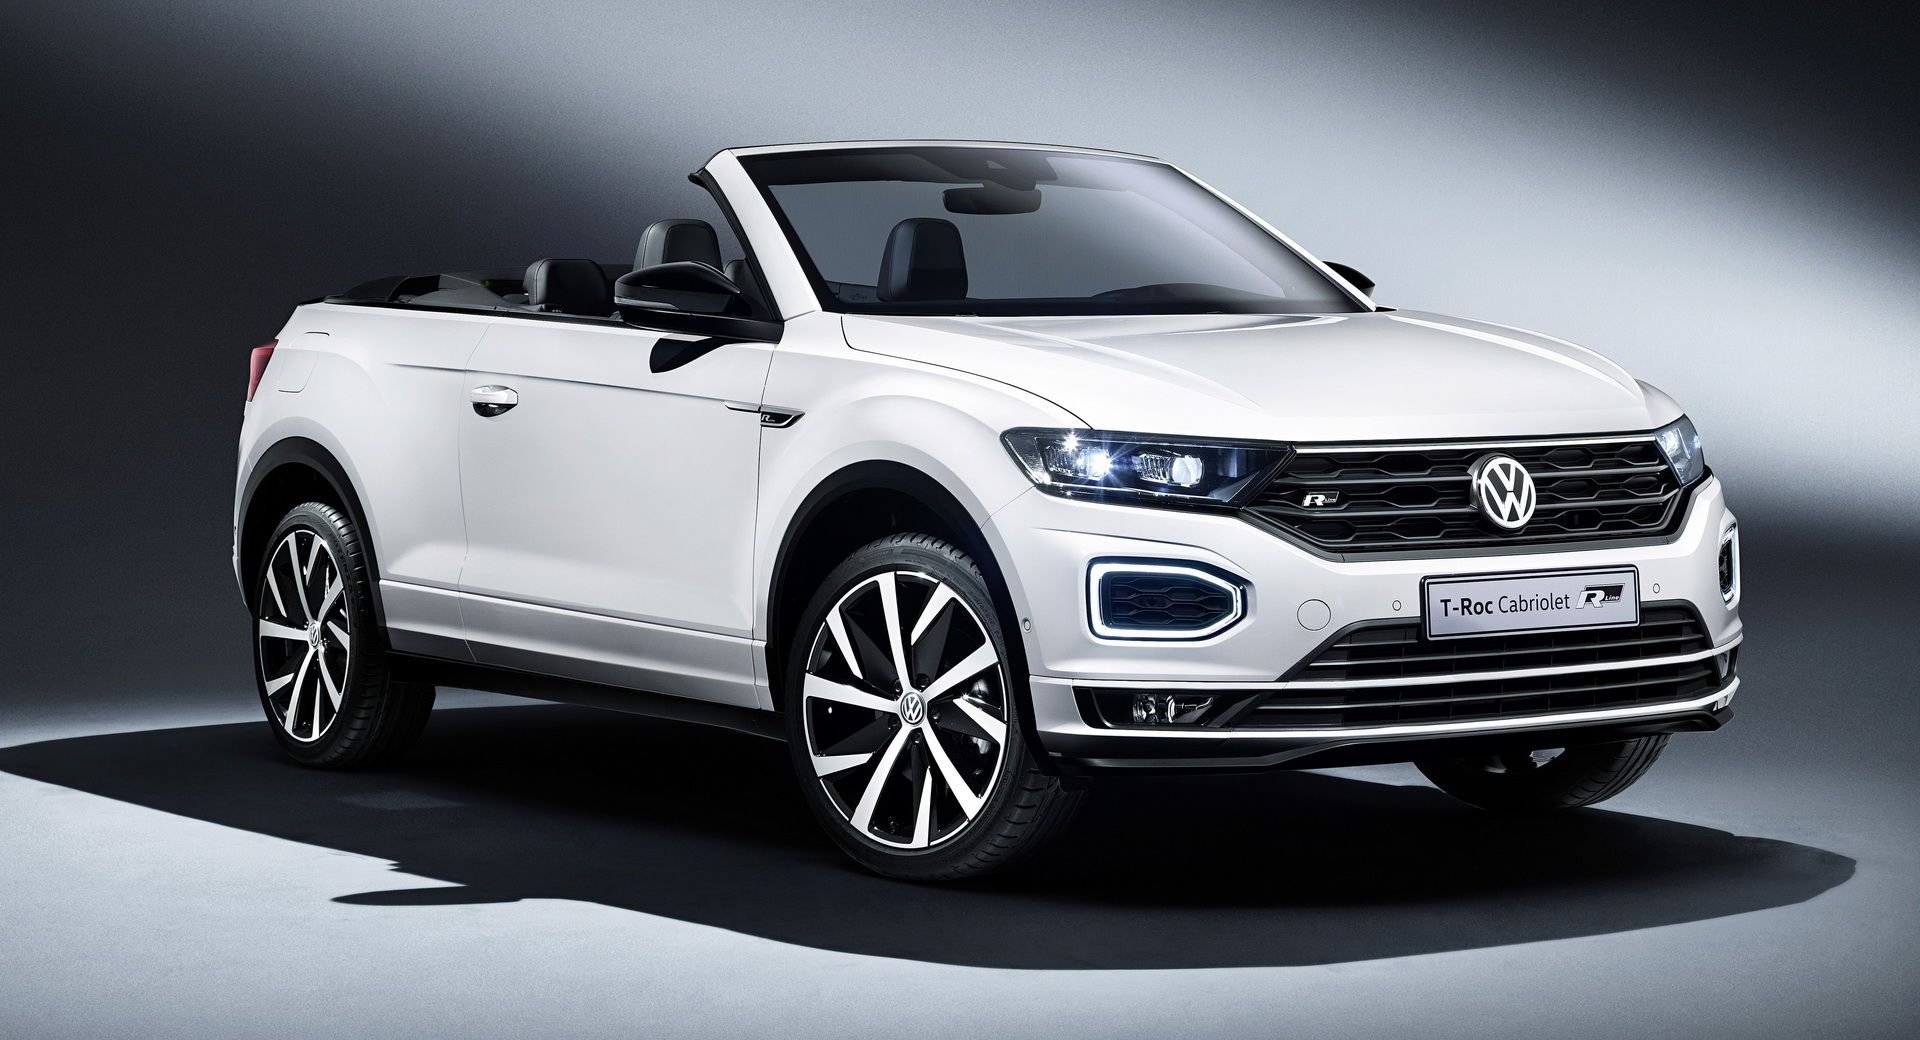 2020 Vw T Roc Cabriolet Available Now In The Uk Priced From 26 750 Newcars Prices Uk Vw Vwt Roc Cars Cars In 2020 Volkswagen Convertible Cabriolets Volkswagen